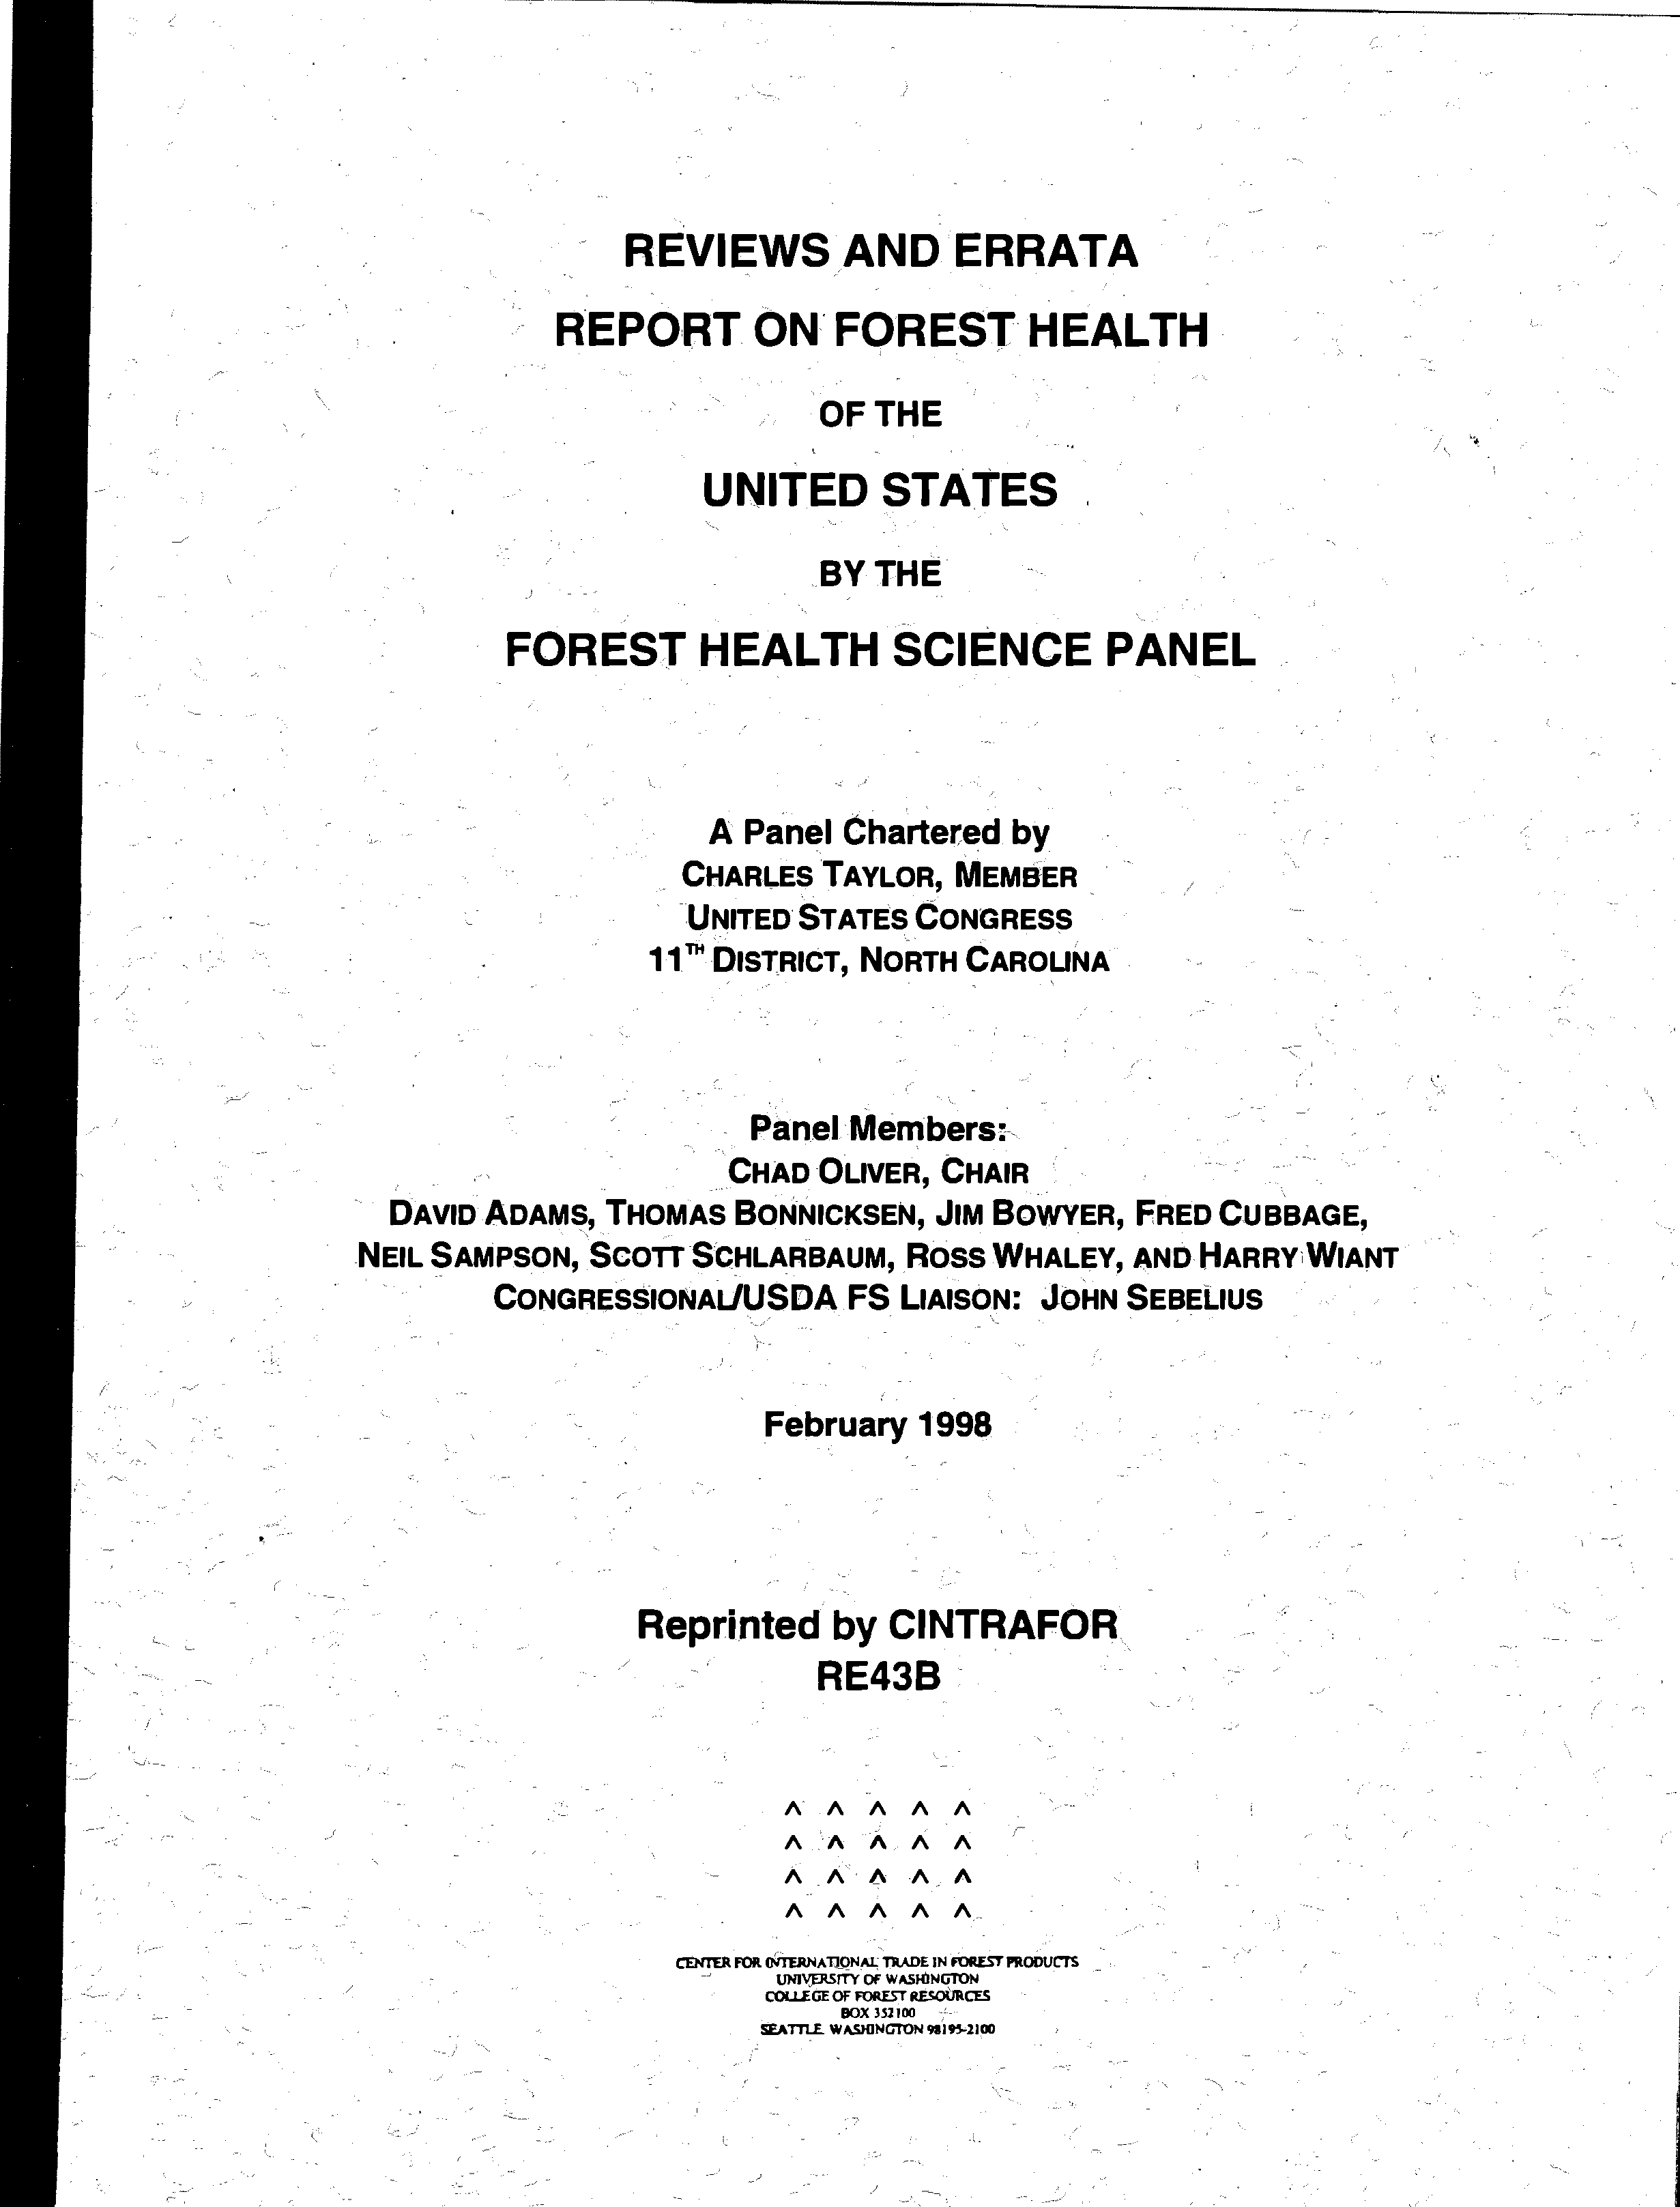 Forest_Health_Reviews and Erratta_Cover_Page_1.png